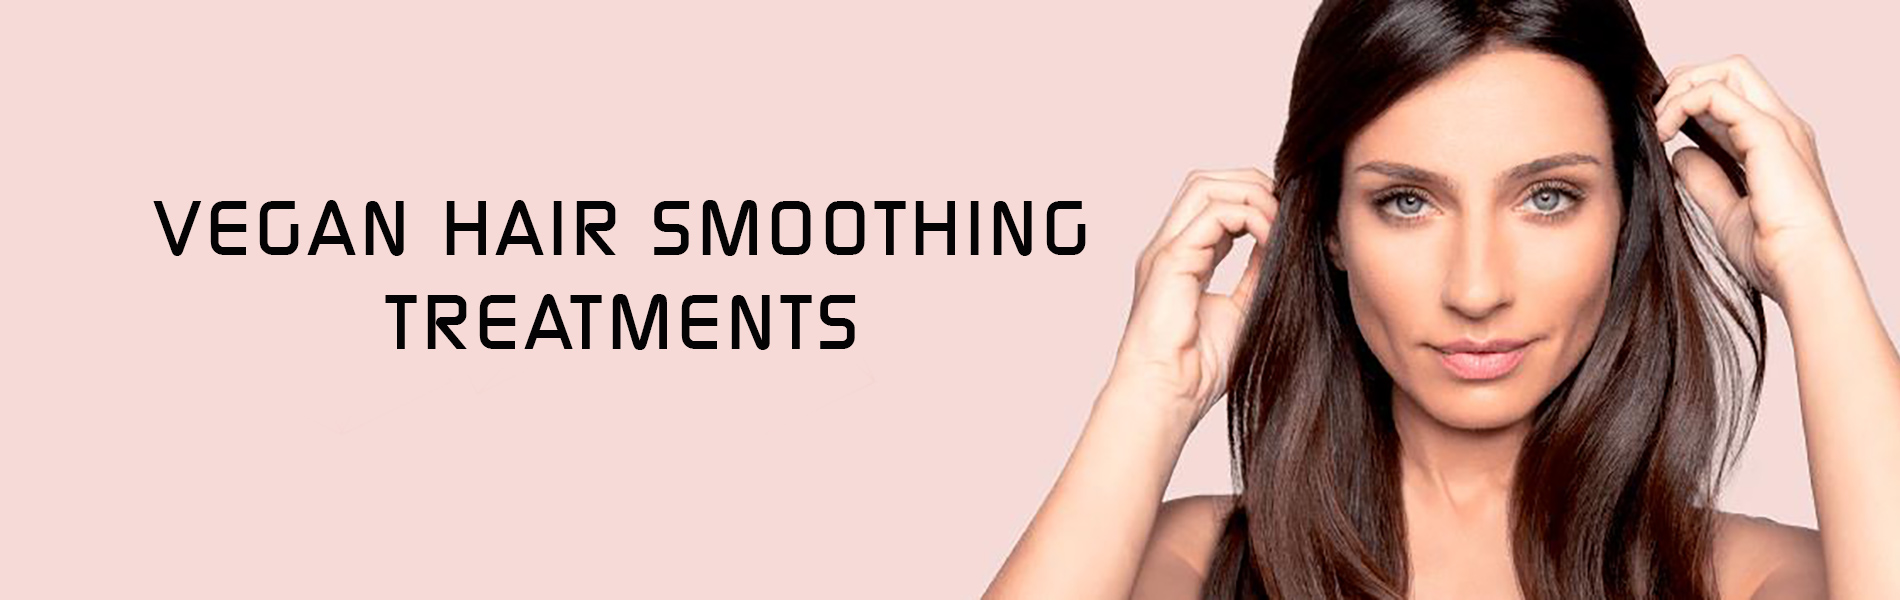 Vegan Hair Smoothing Treatments Uxbridge Hairdressers